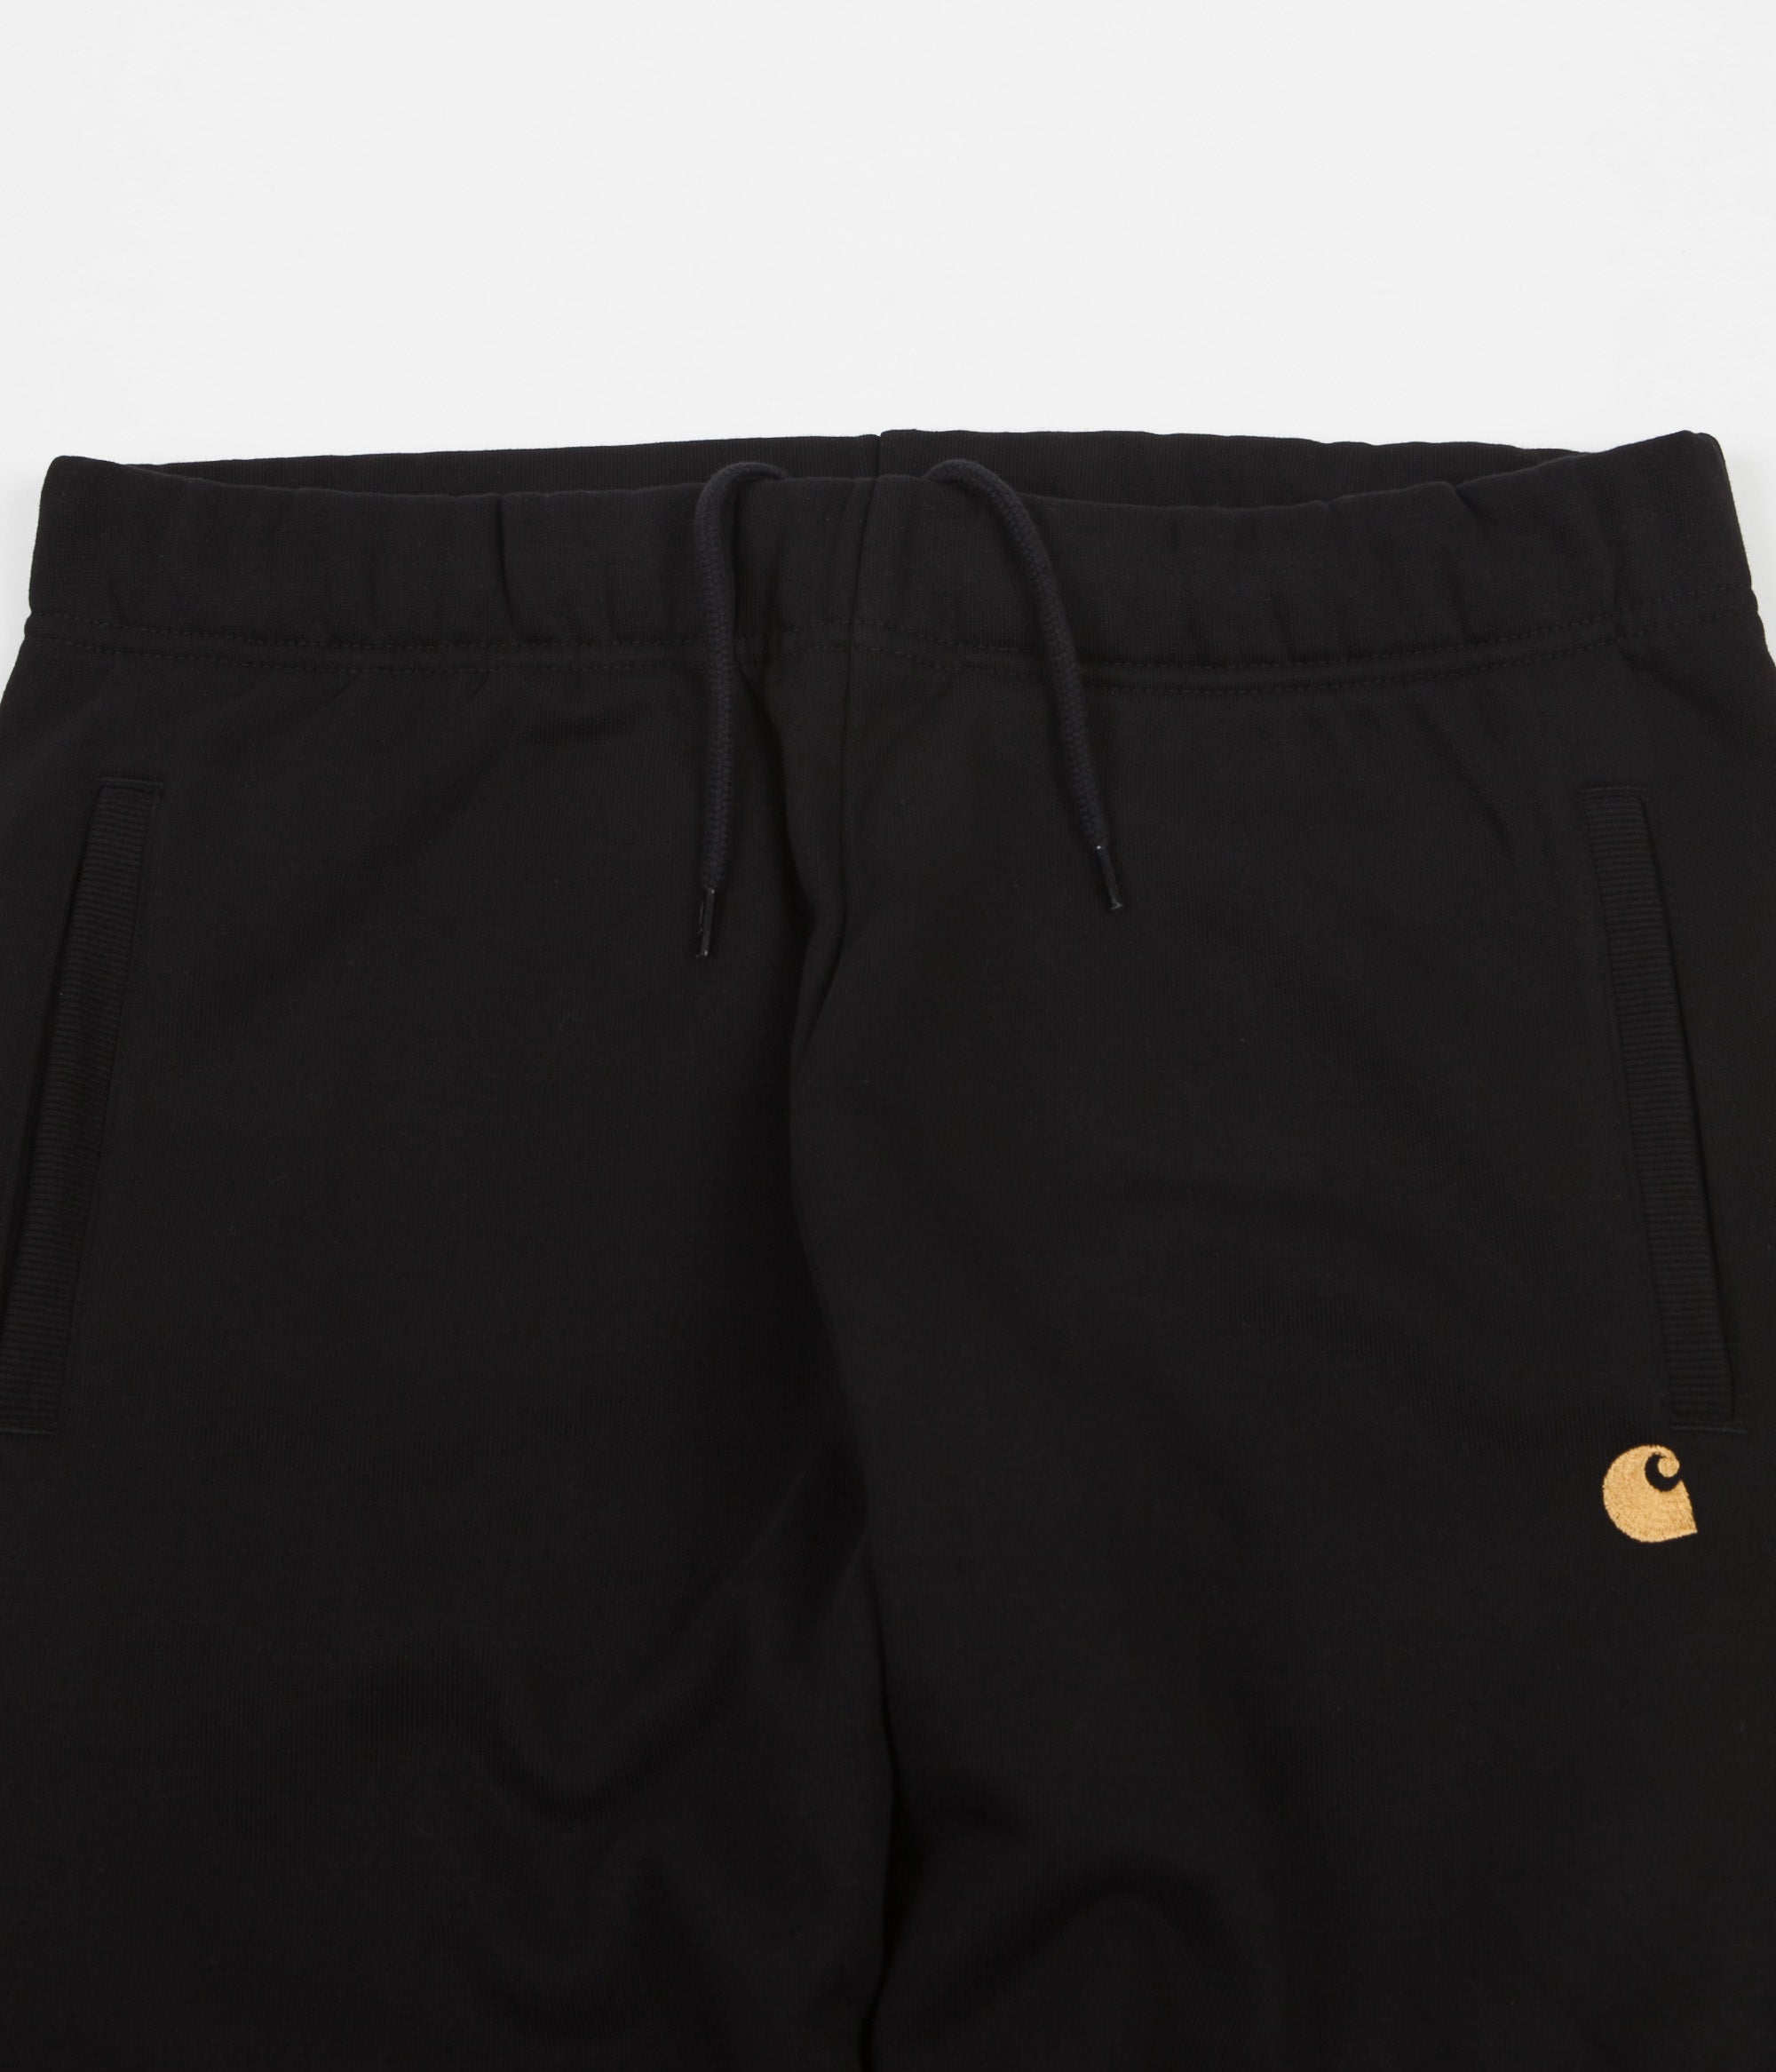 Carhartt Chase Sweatpants - Black / Gold